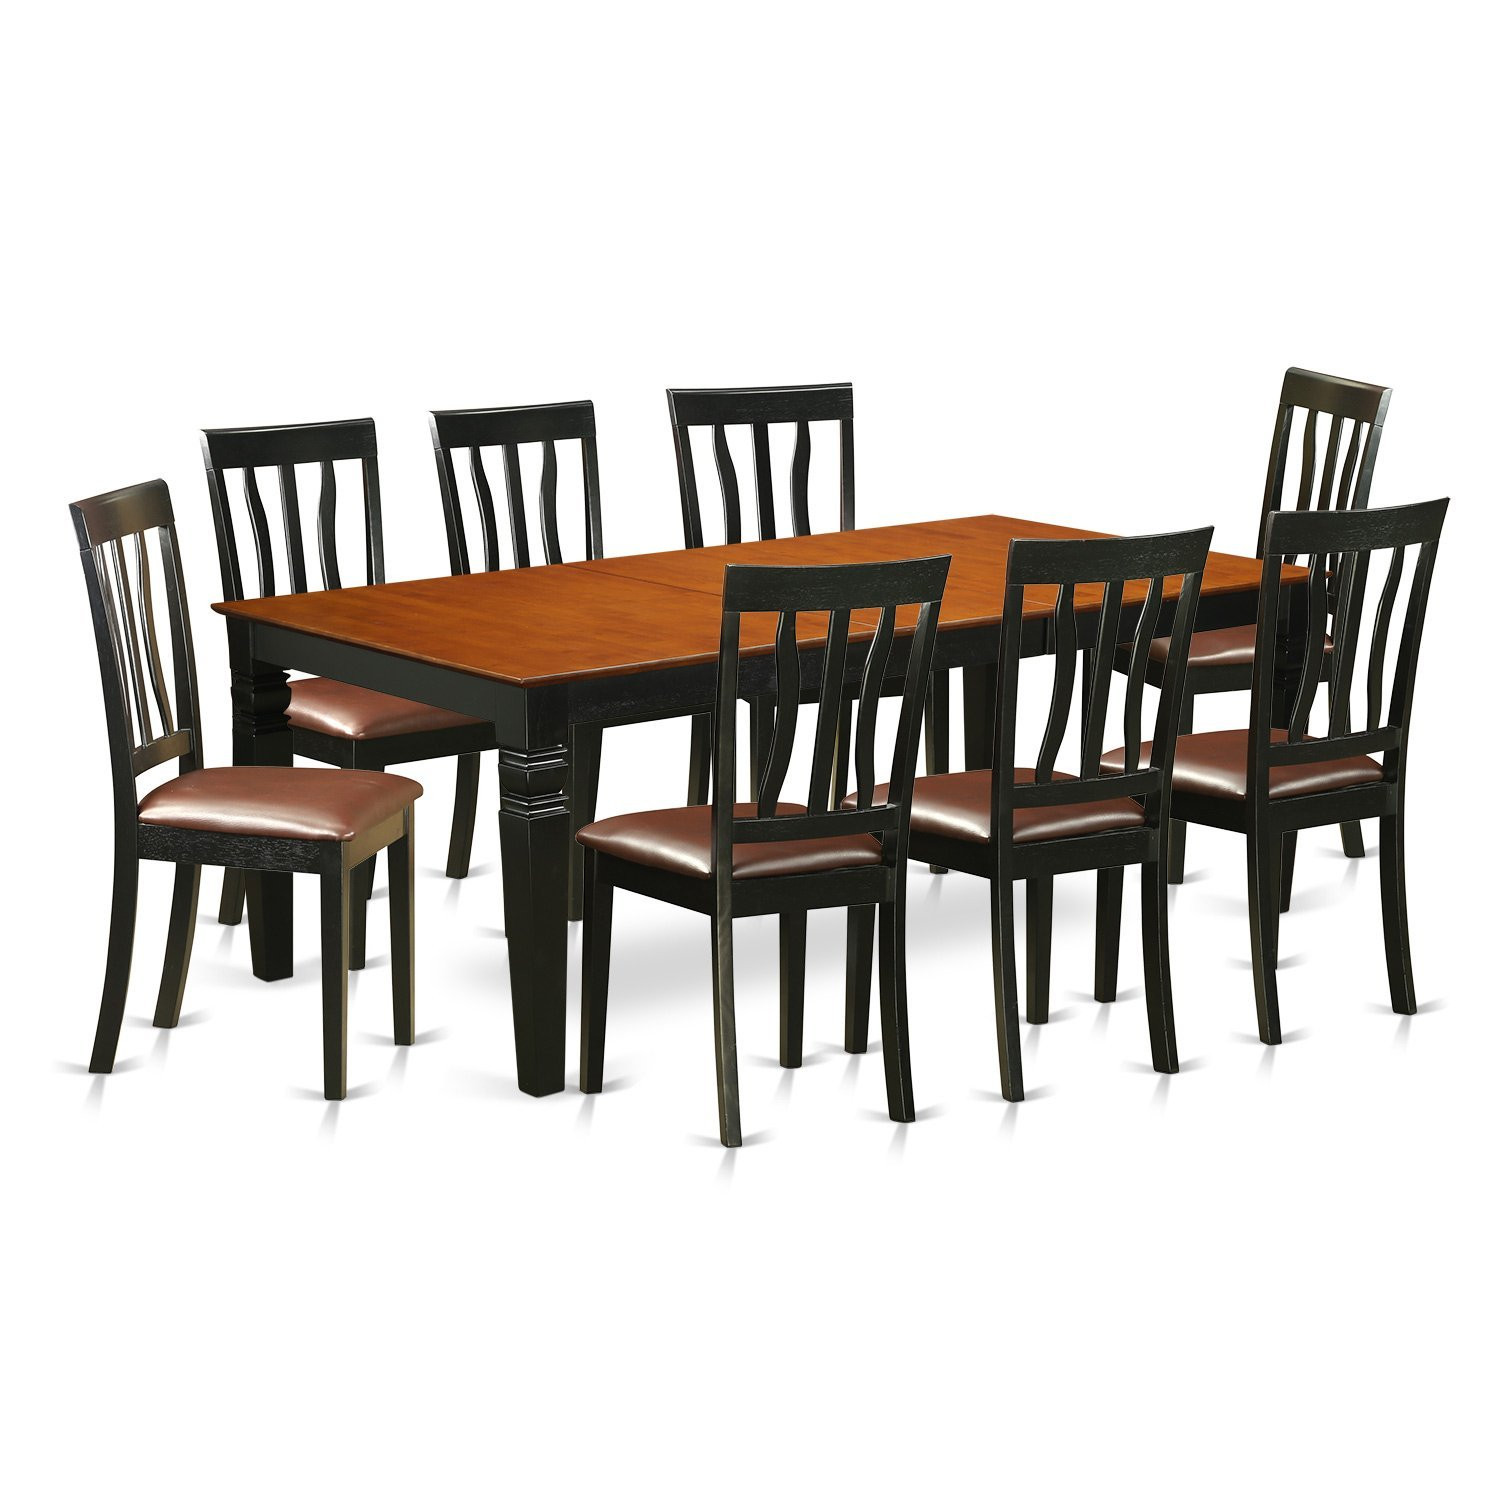 East West Furniture LGAN9-BCH-LC 9 Pc Kitchen Table Set with a Dining Table and 8 Kitchen Chairs in Black and Cherry